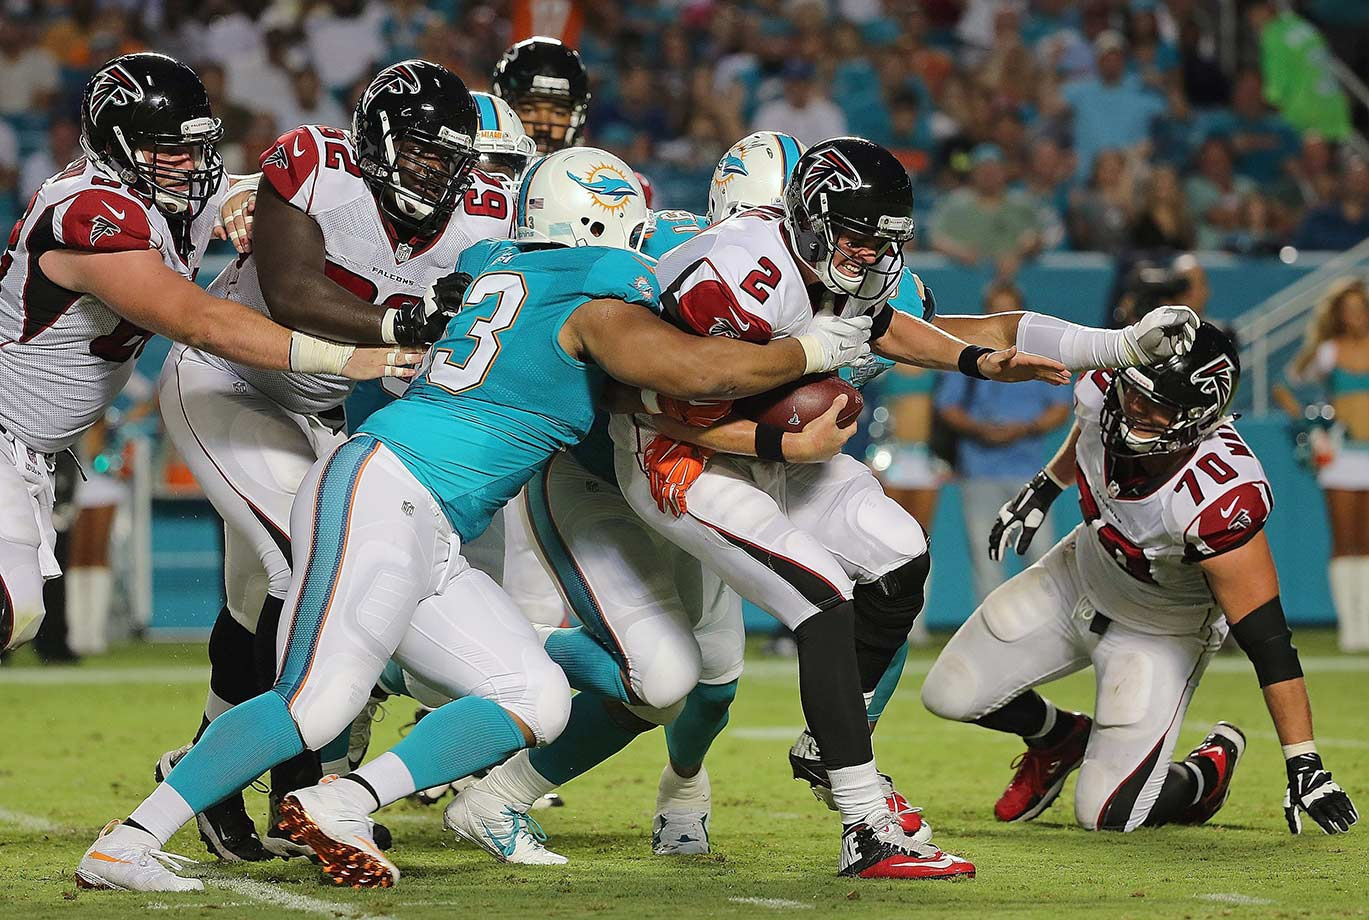 The Dirty Birds finally moved on from The Mike Smith Project, but this offensive line still ranks among the worst in the league. Luckily, they get to dominate during the week when they face their brutally bad defense in practice.